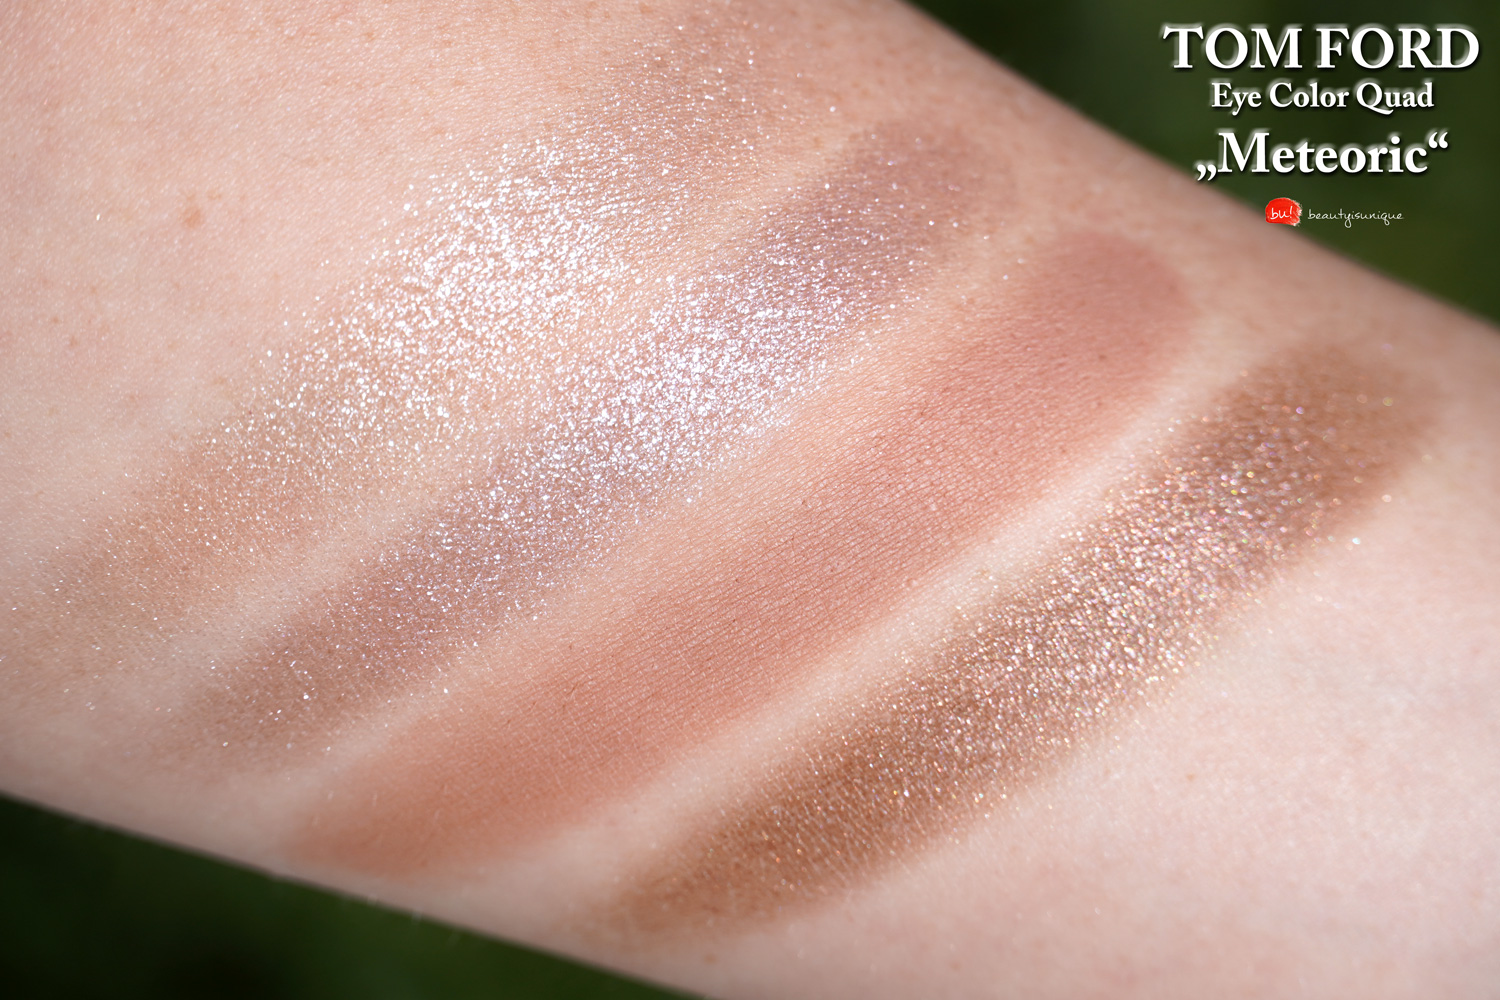 Tom-ford-meteoric-swatches-palette-eye-color-quad